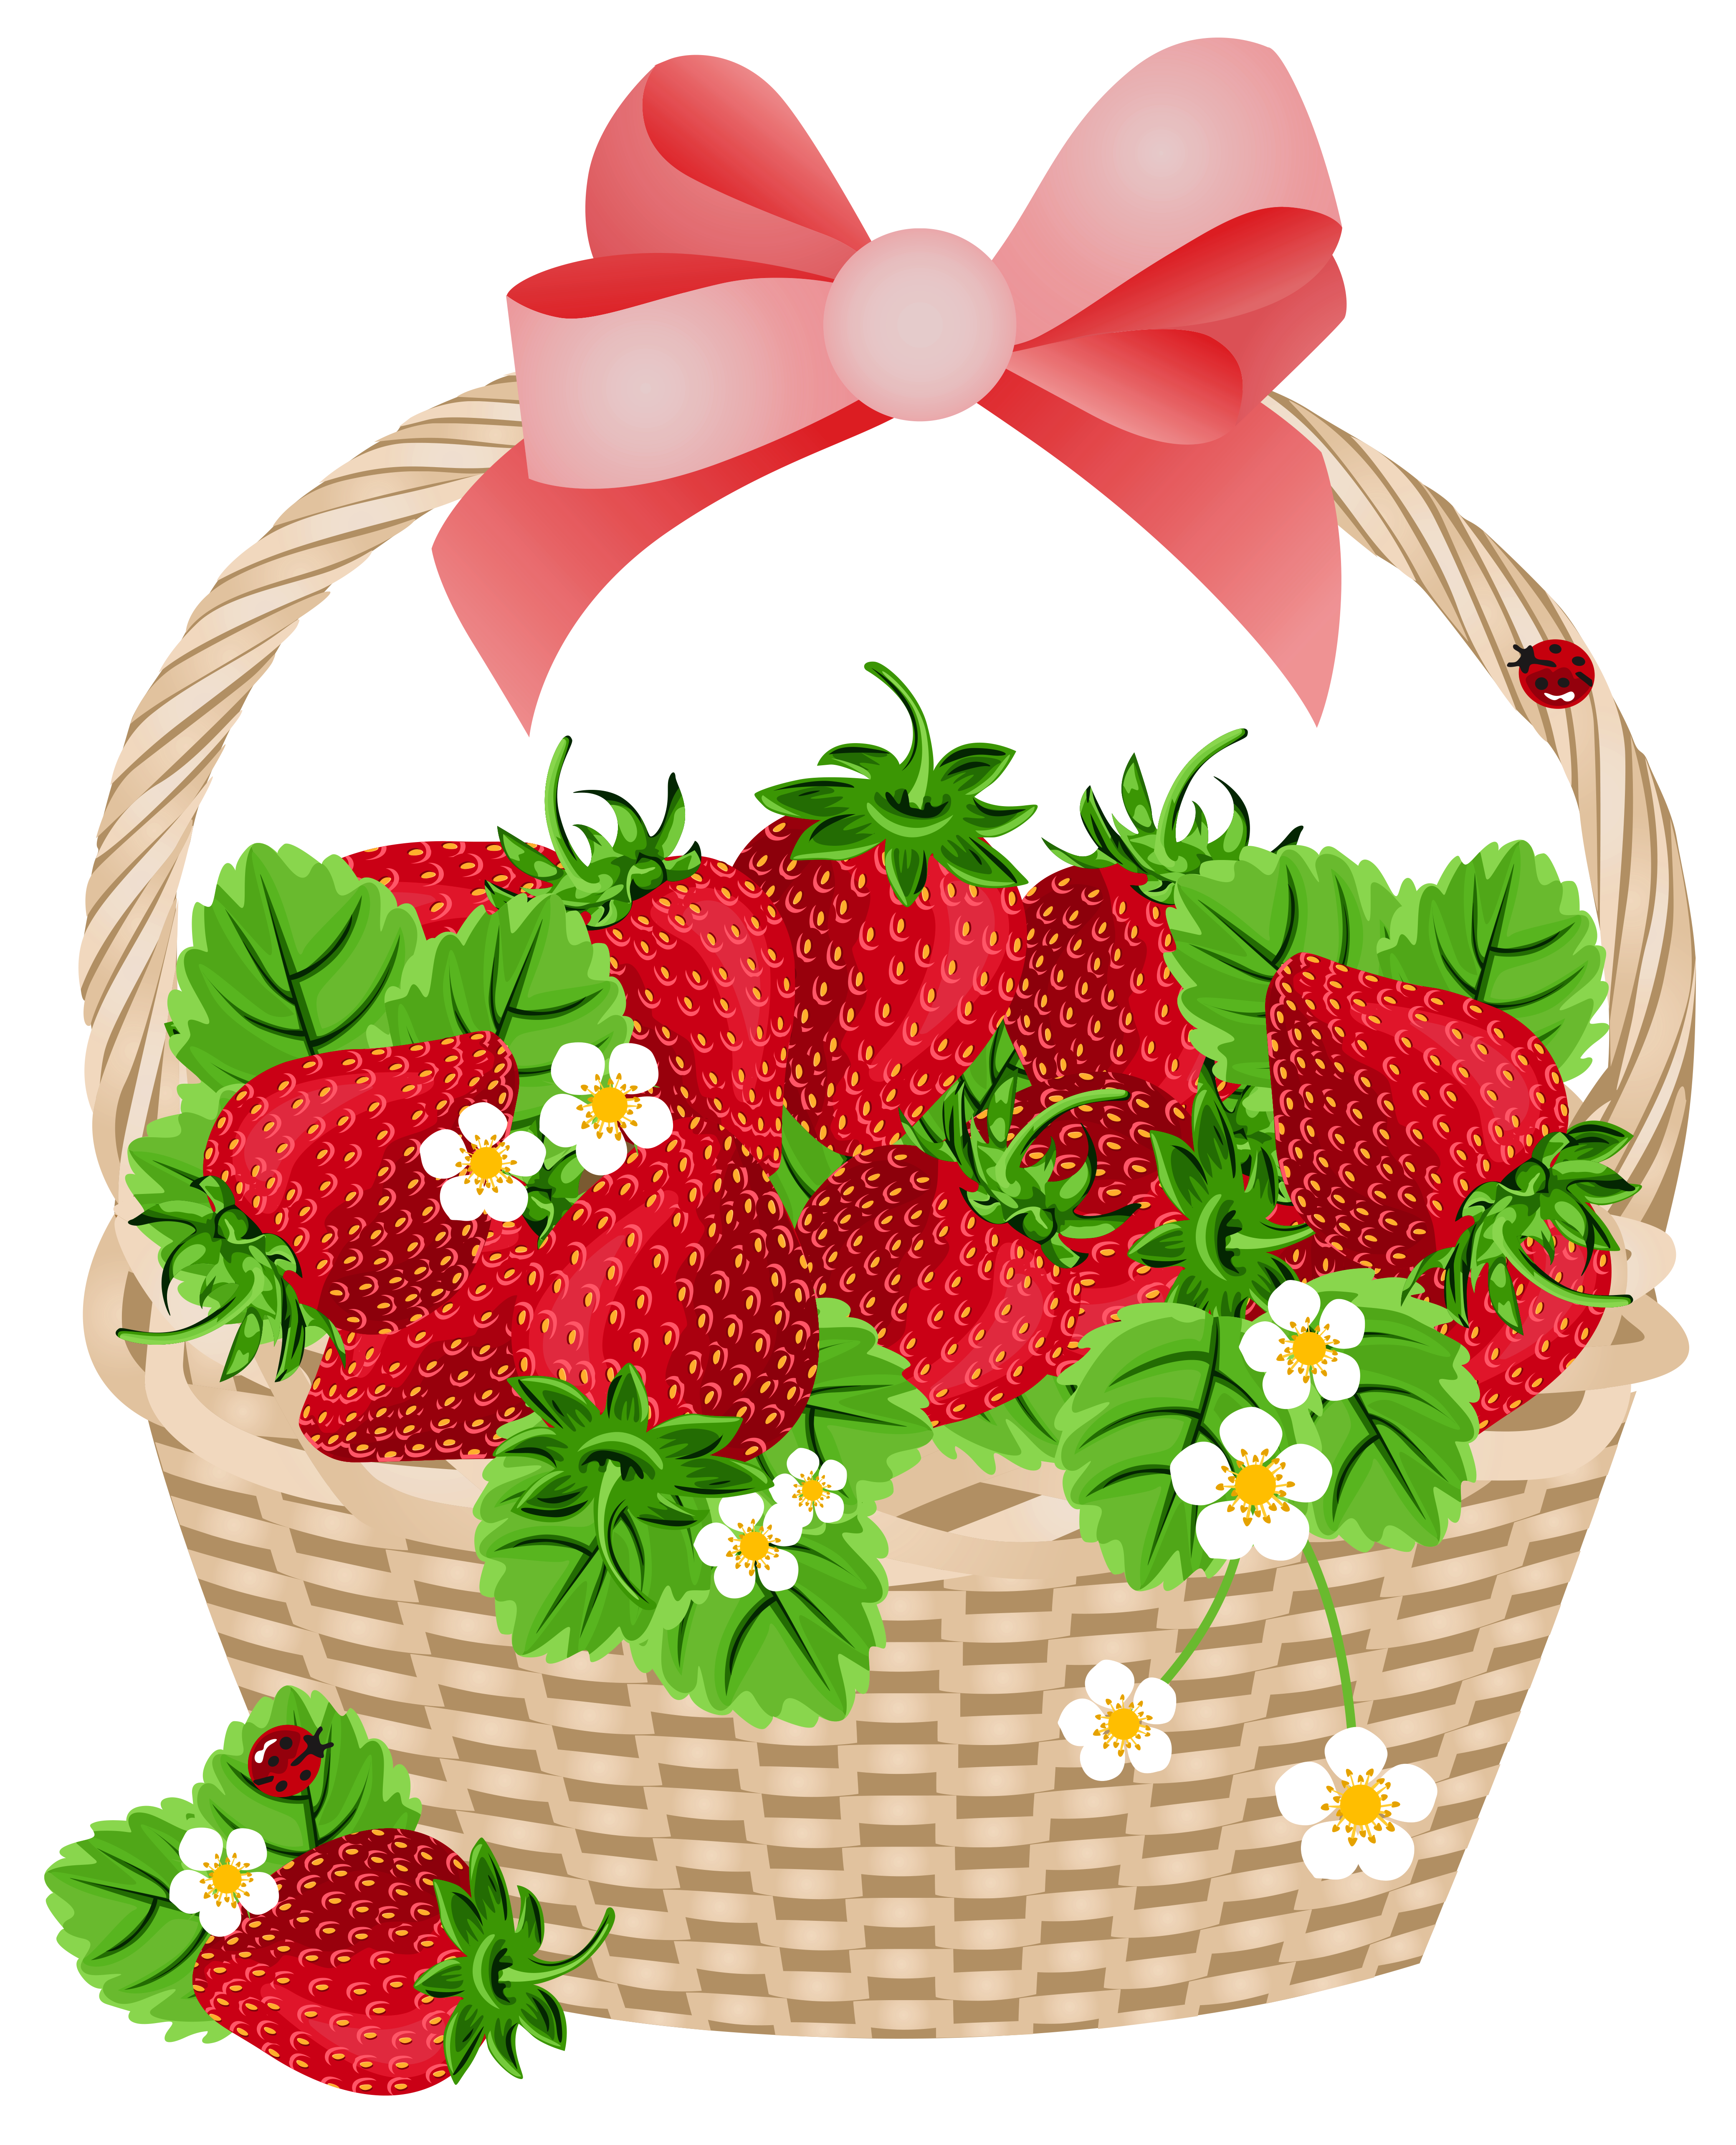 Clipart box strawberry. Basket with strawberries transparent